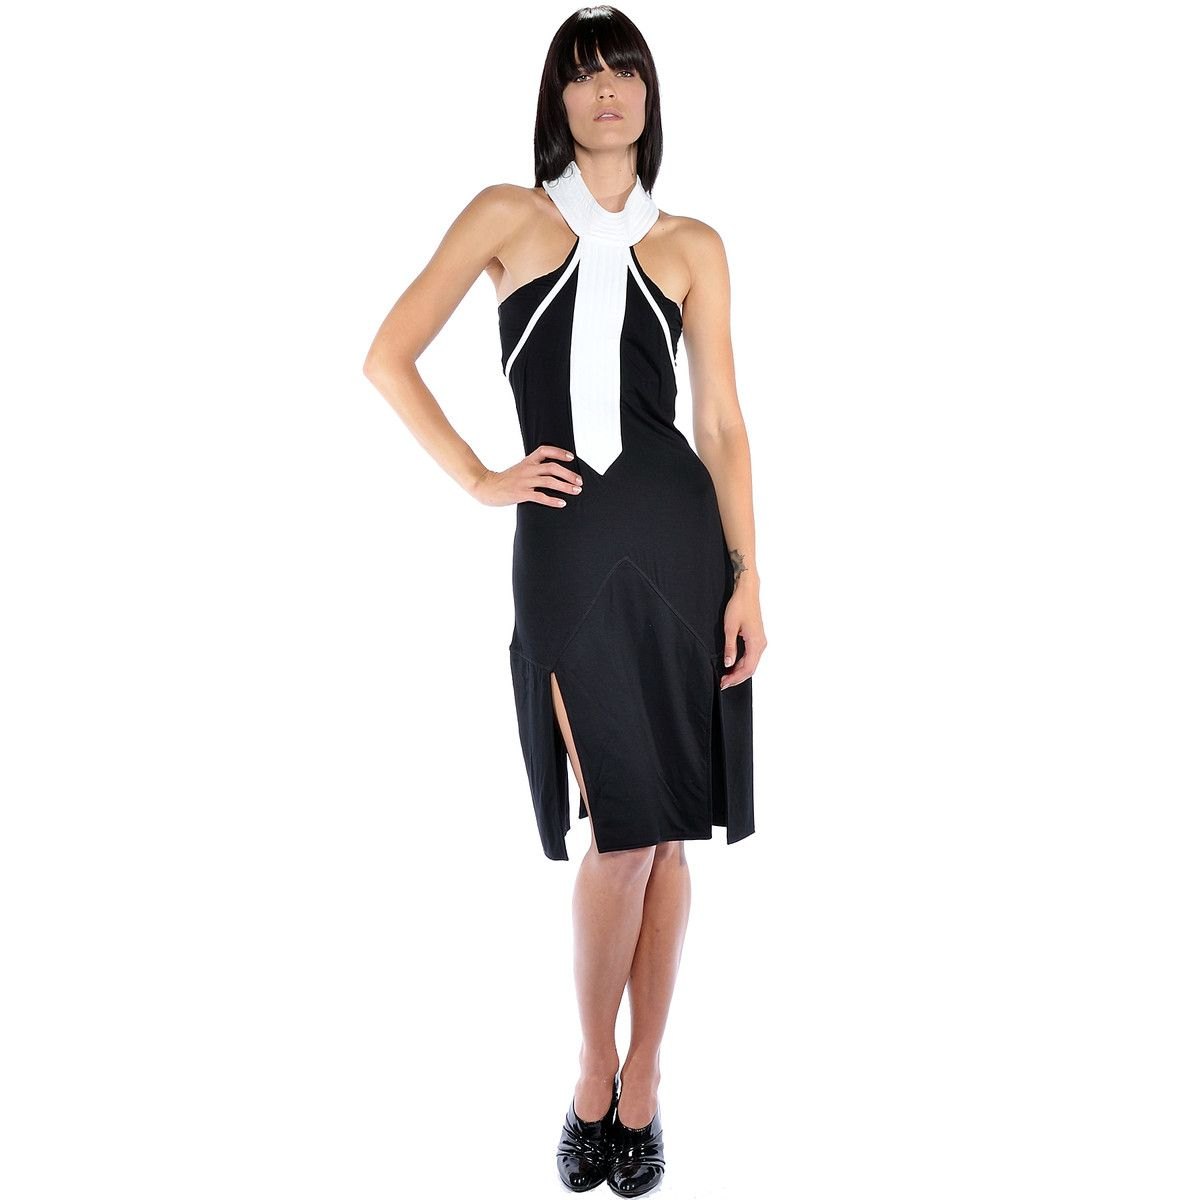 DRESSES - Long dresses Nuvola Sale Collections Cheap Price Top Quality Extremely For Nice CvIS4Fo